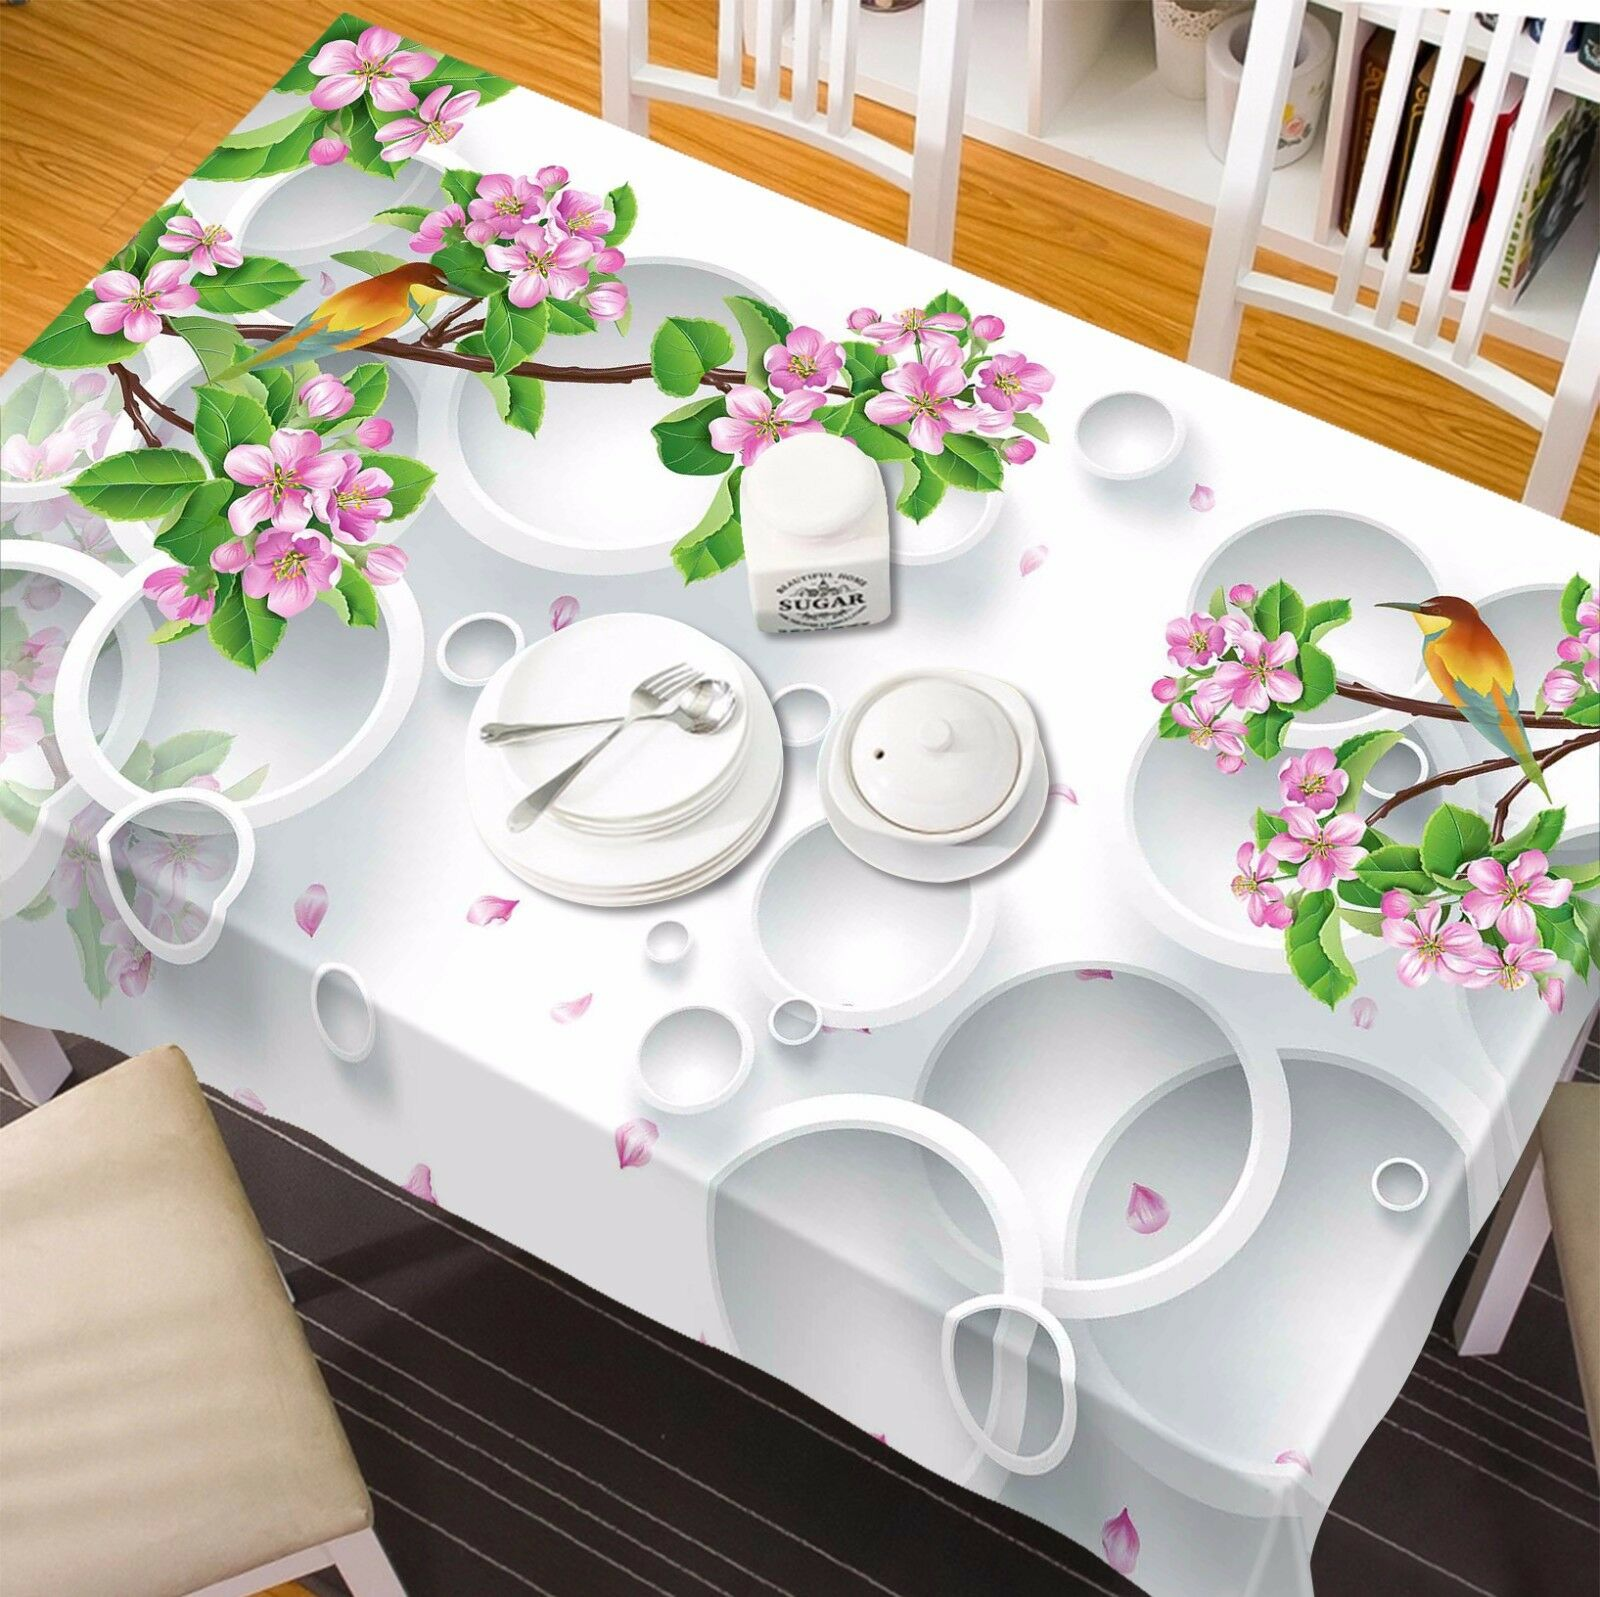 3D Peach 89 Tablecloth Table Cover Cloth Birthday Party Event AJ WALLPAPER AU